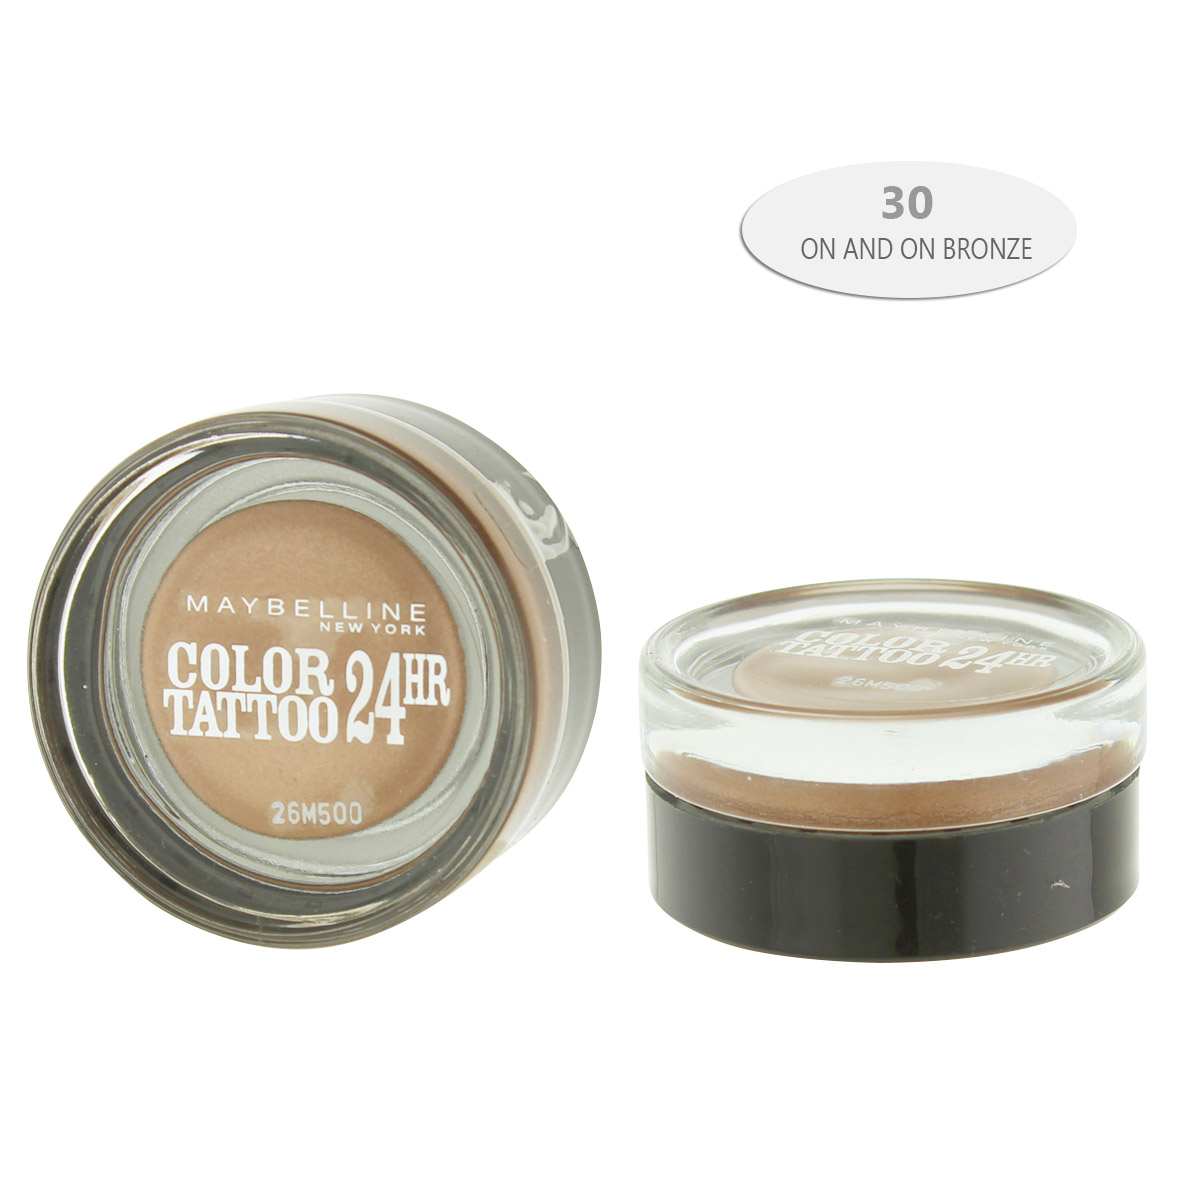 Maybelline Color Tattoo 24 HR Gel-Cream Eye Shadow (30 On and on Bronze) 3,5 ml